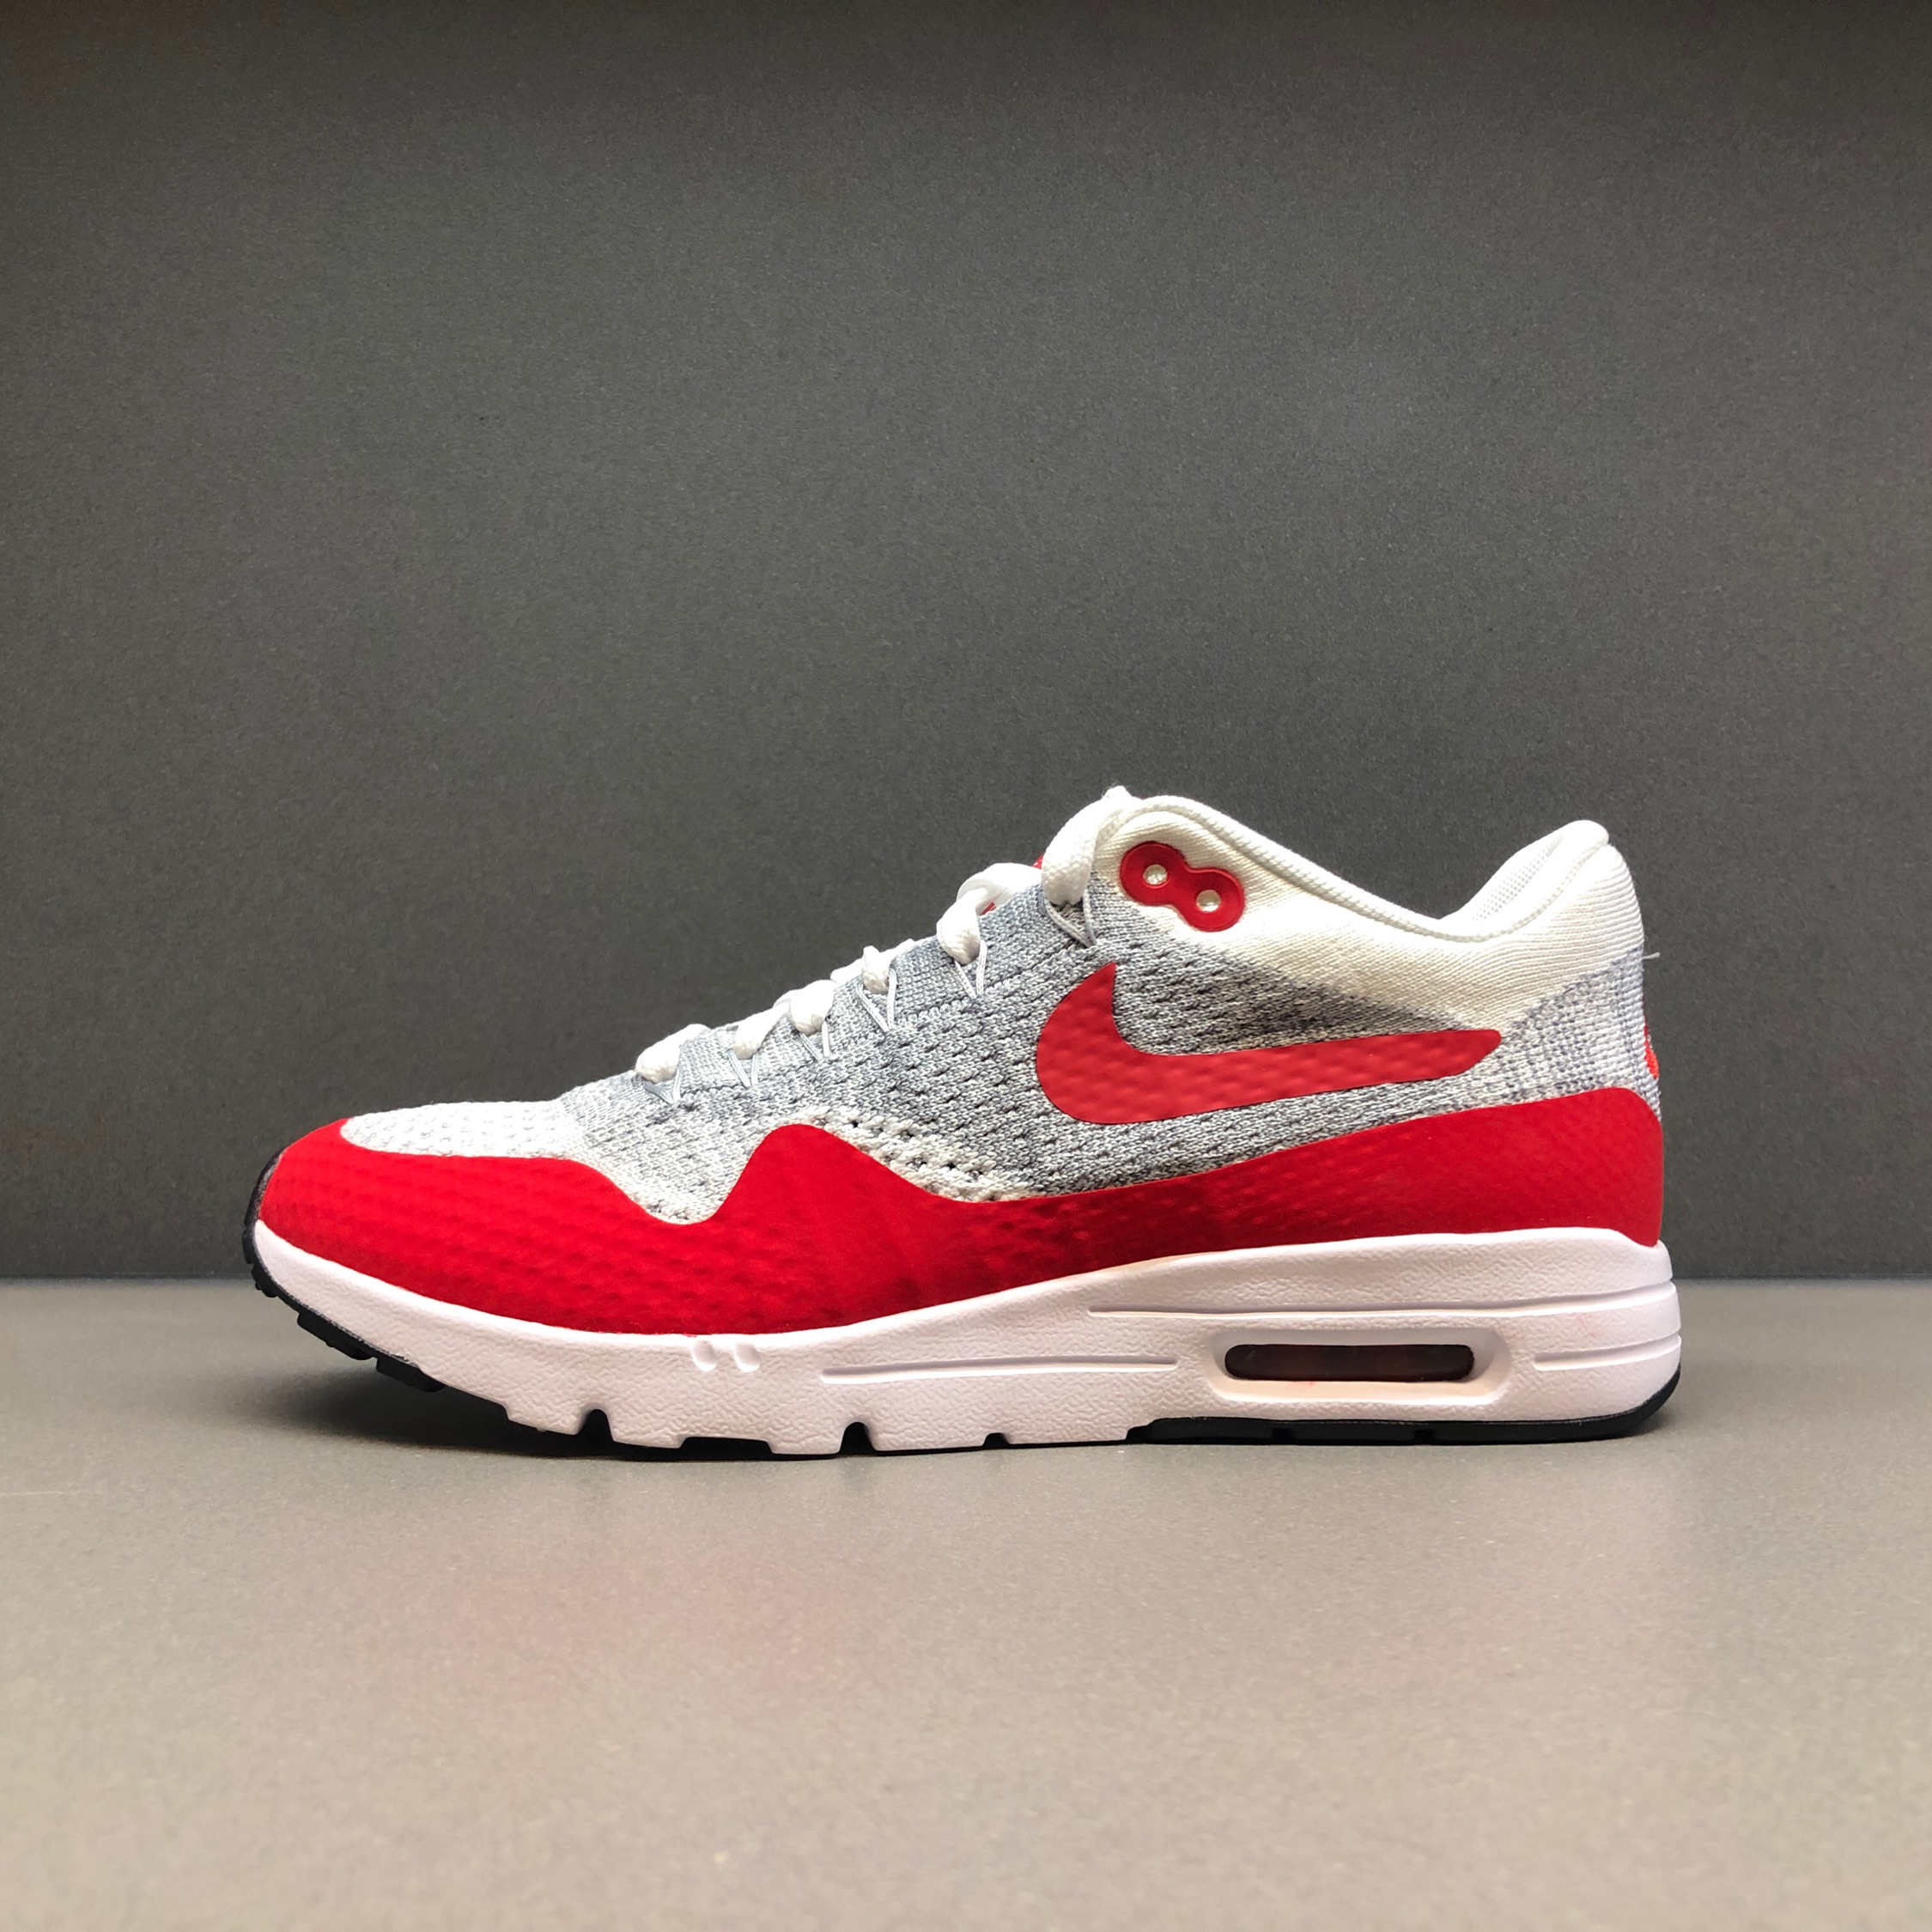 new styles 719a8 99858 Nike Air Max 1 Ultra Flyknit University Red W